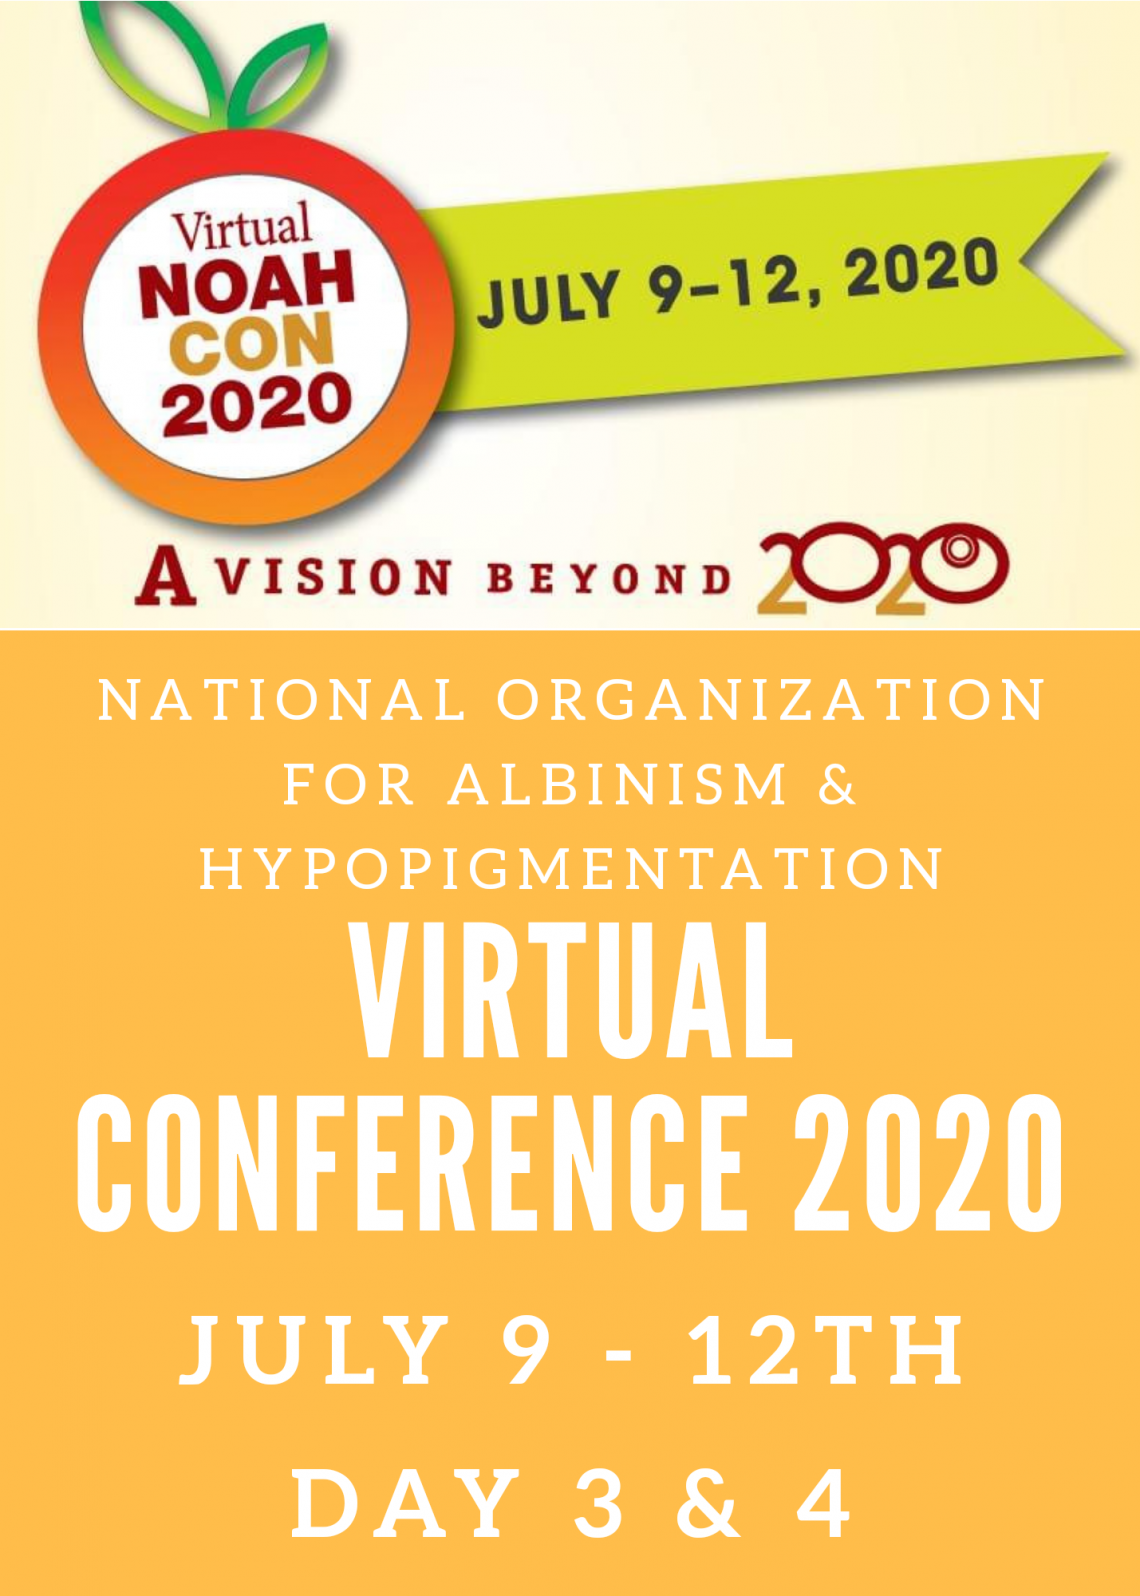 NOAH Virtual Conference Day 3 & 4